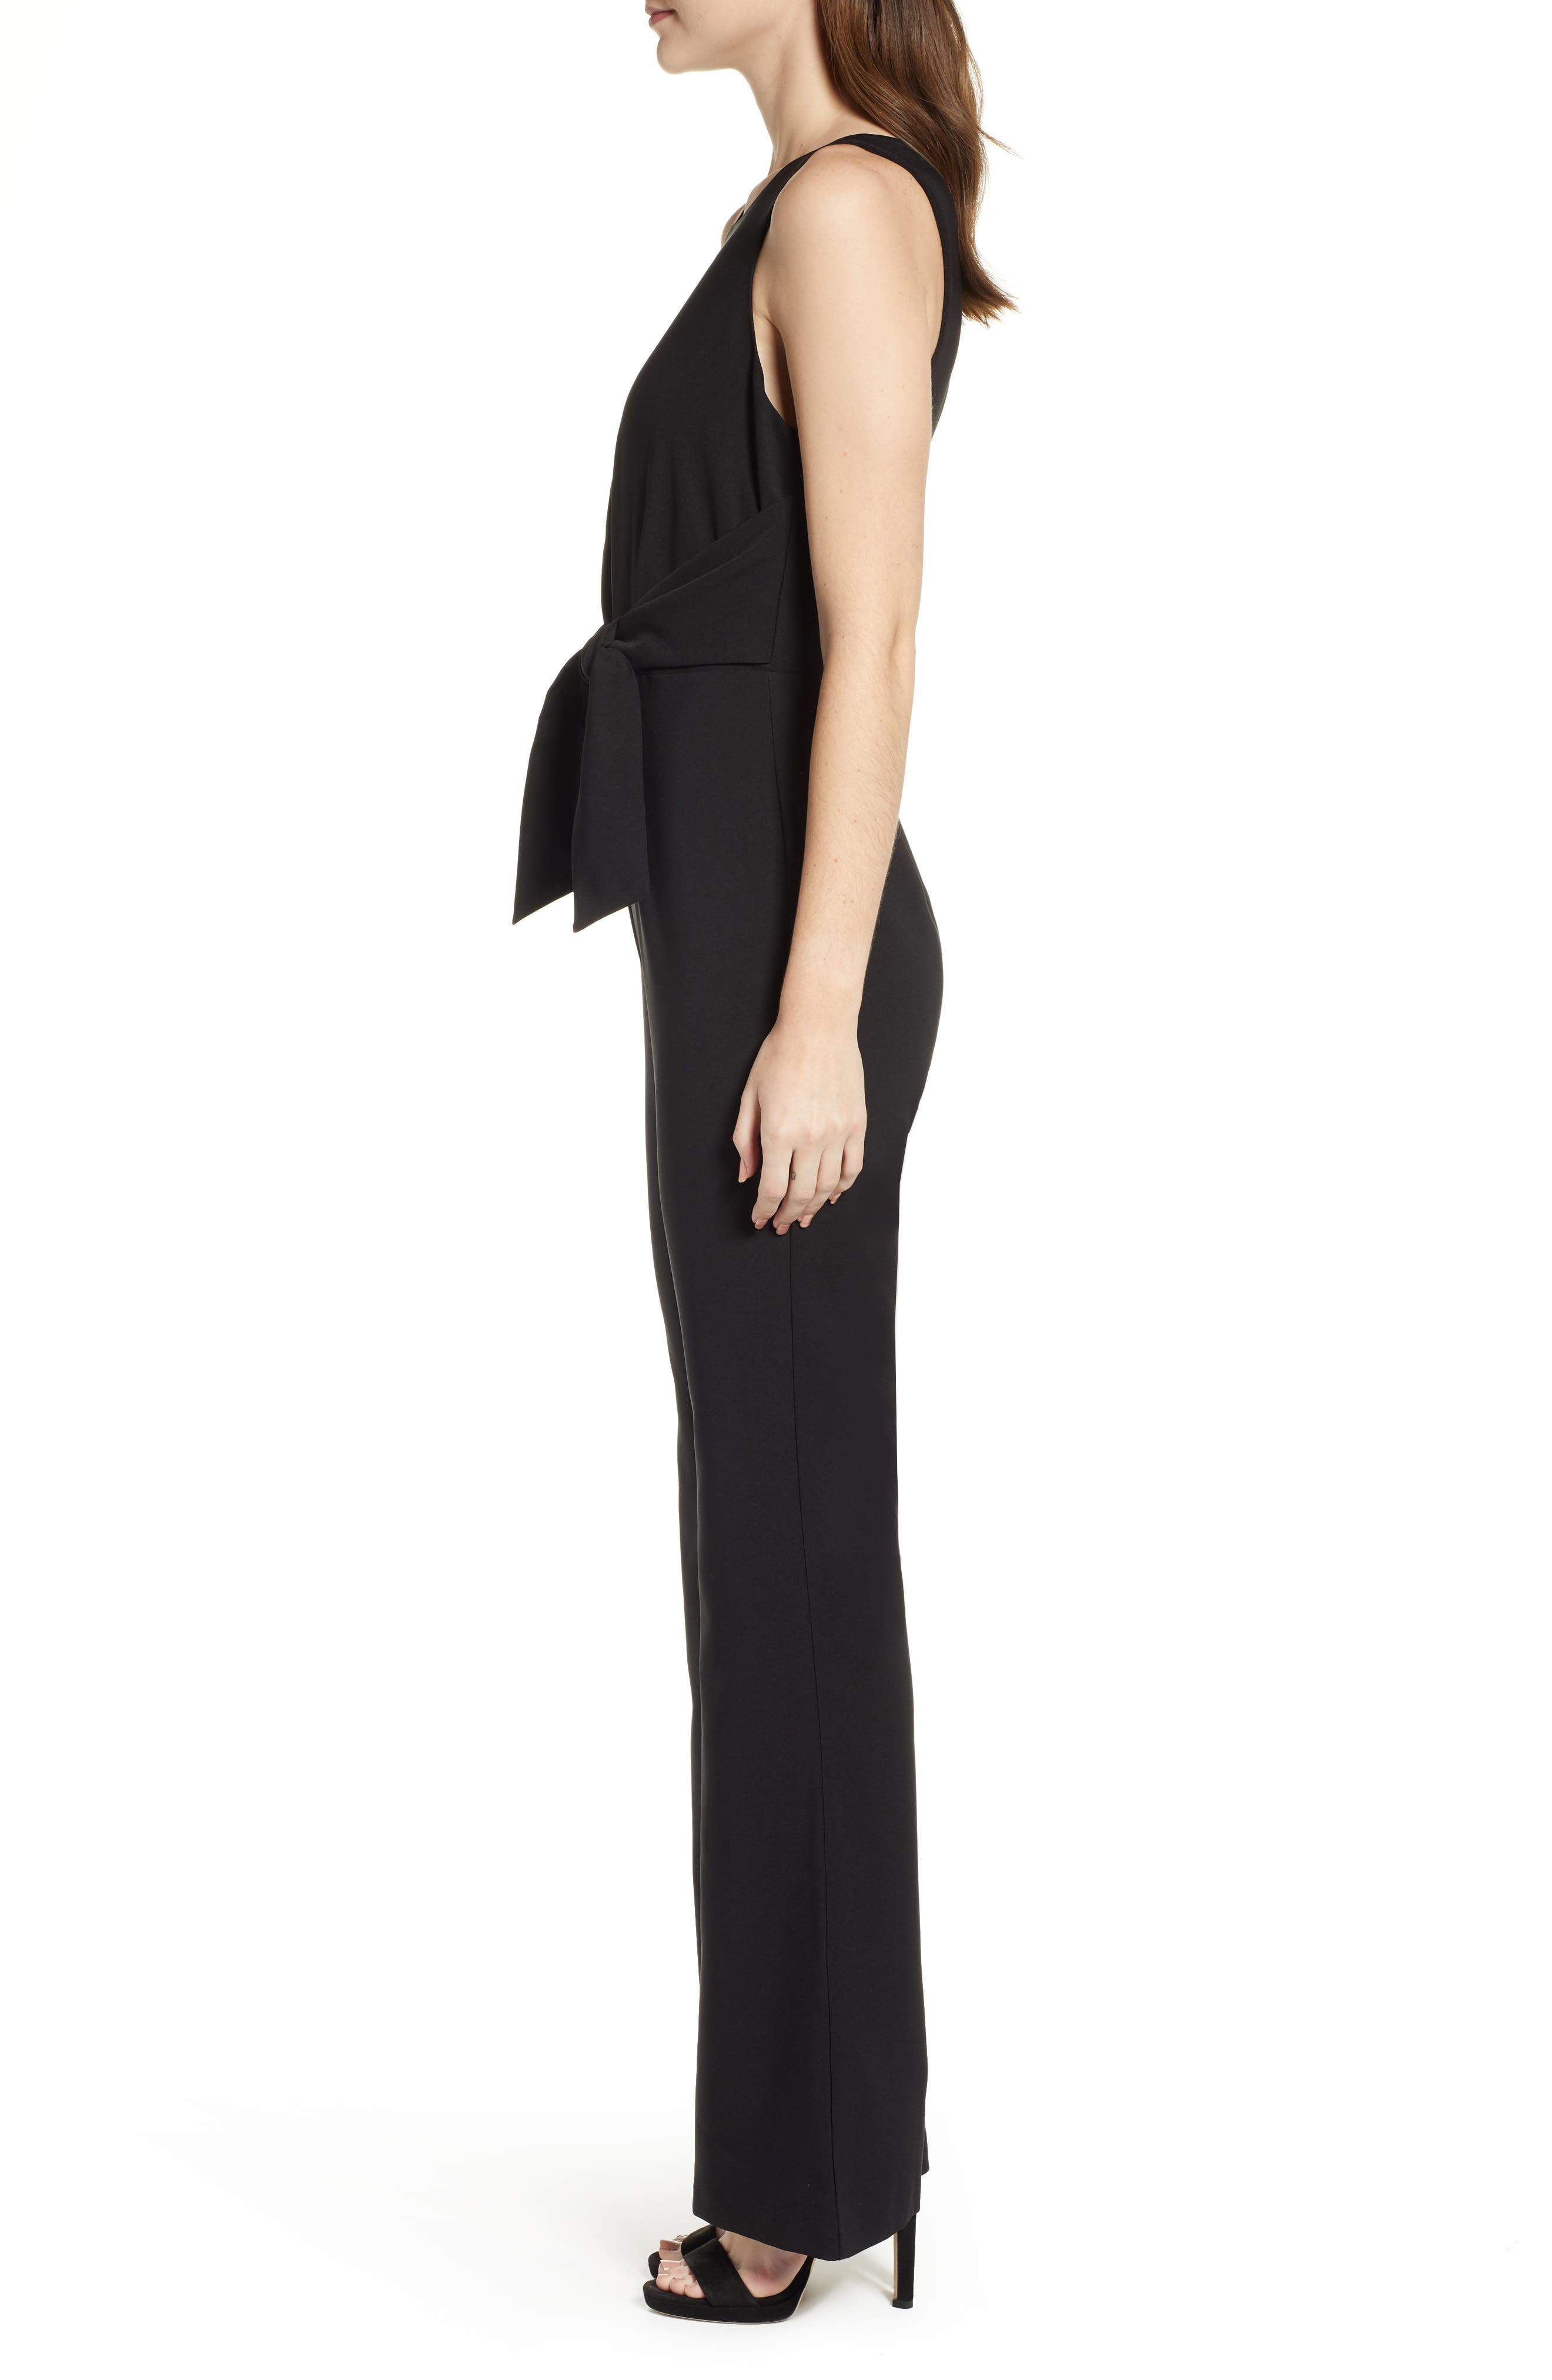 SOCIALITE, Tie Front Jumpsuit, Alternate thumbnail 4, color, BLACK